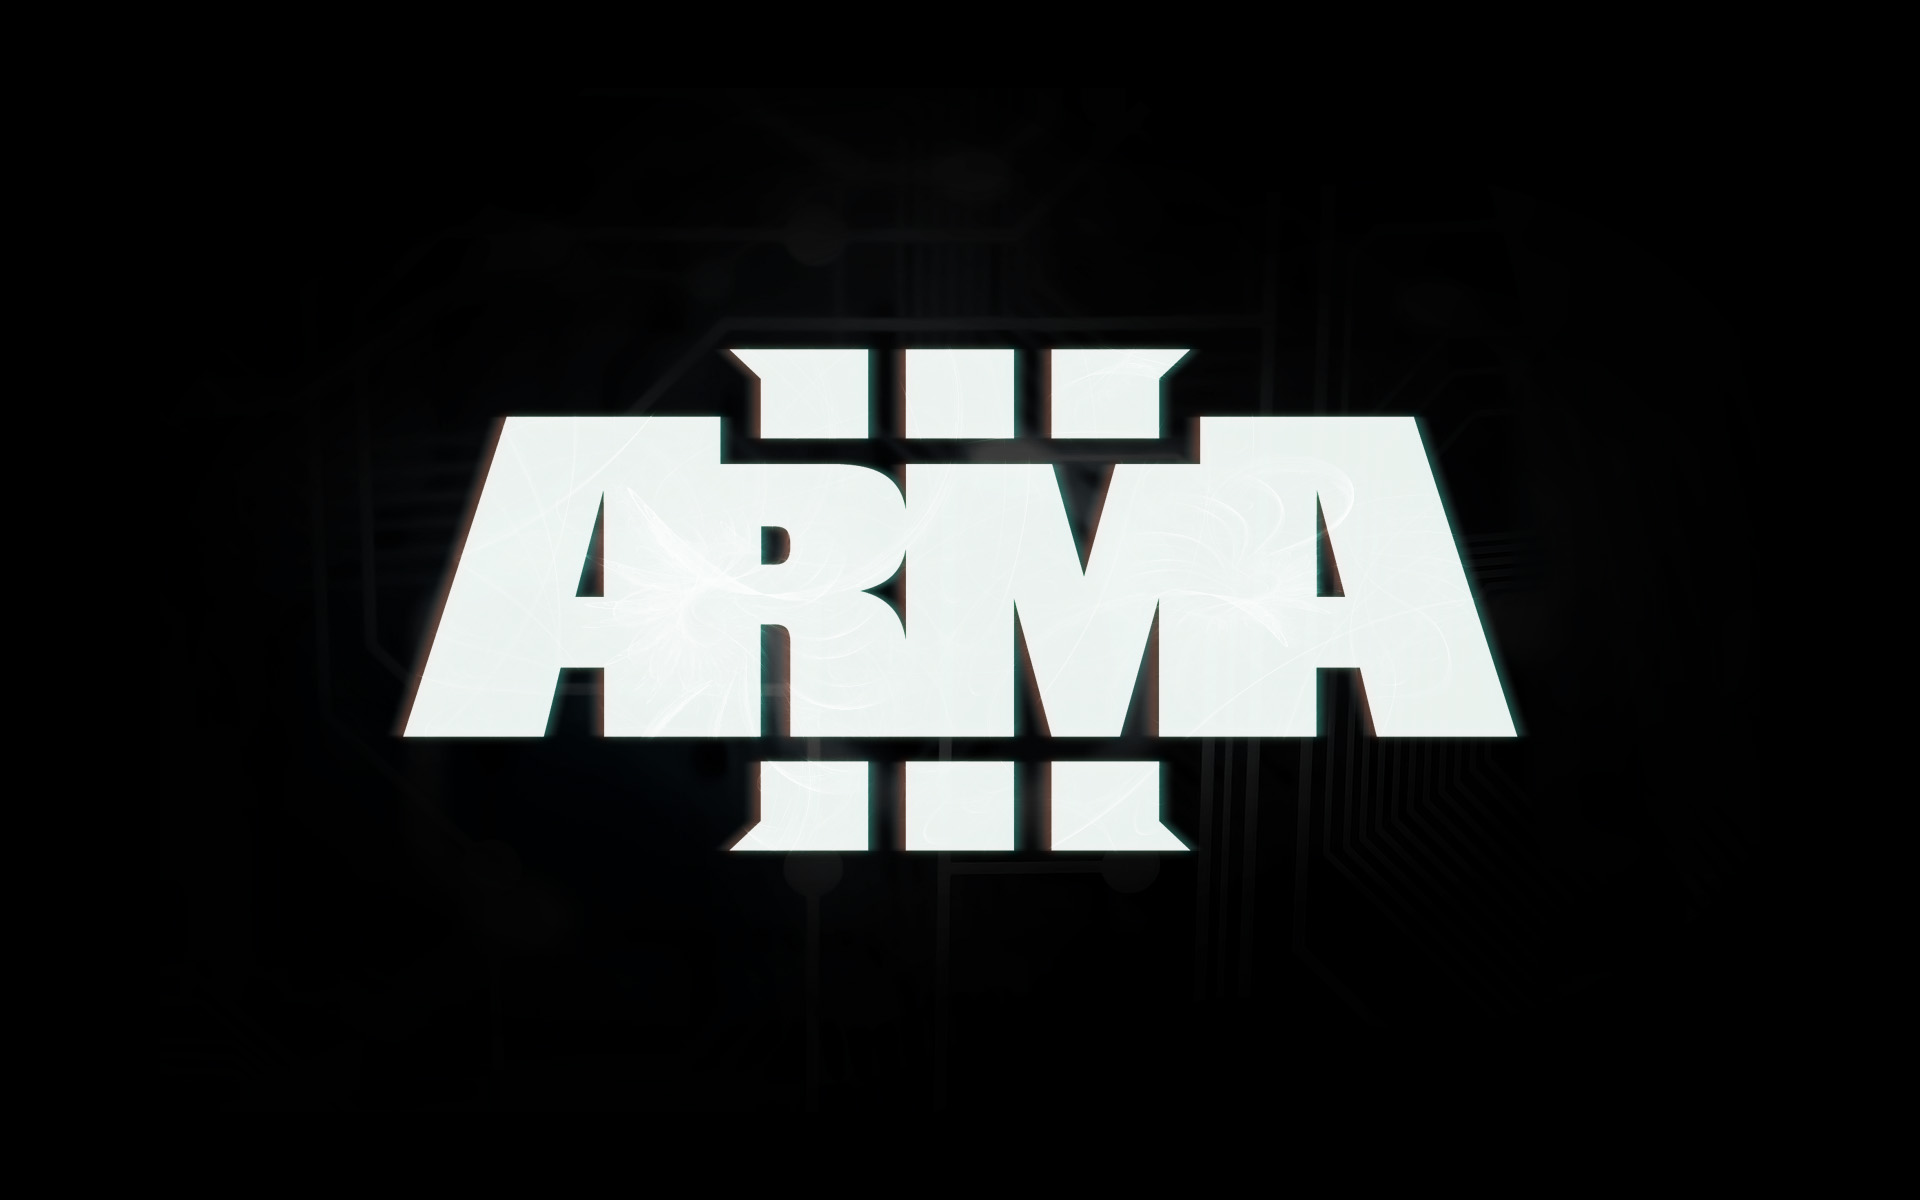 Arma 3 Logo wallpaper.